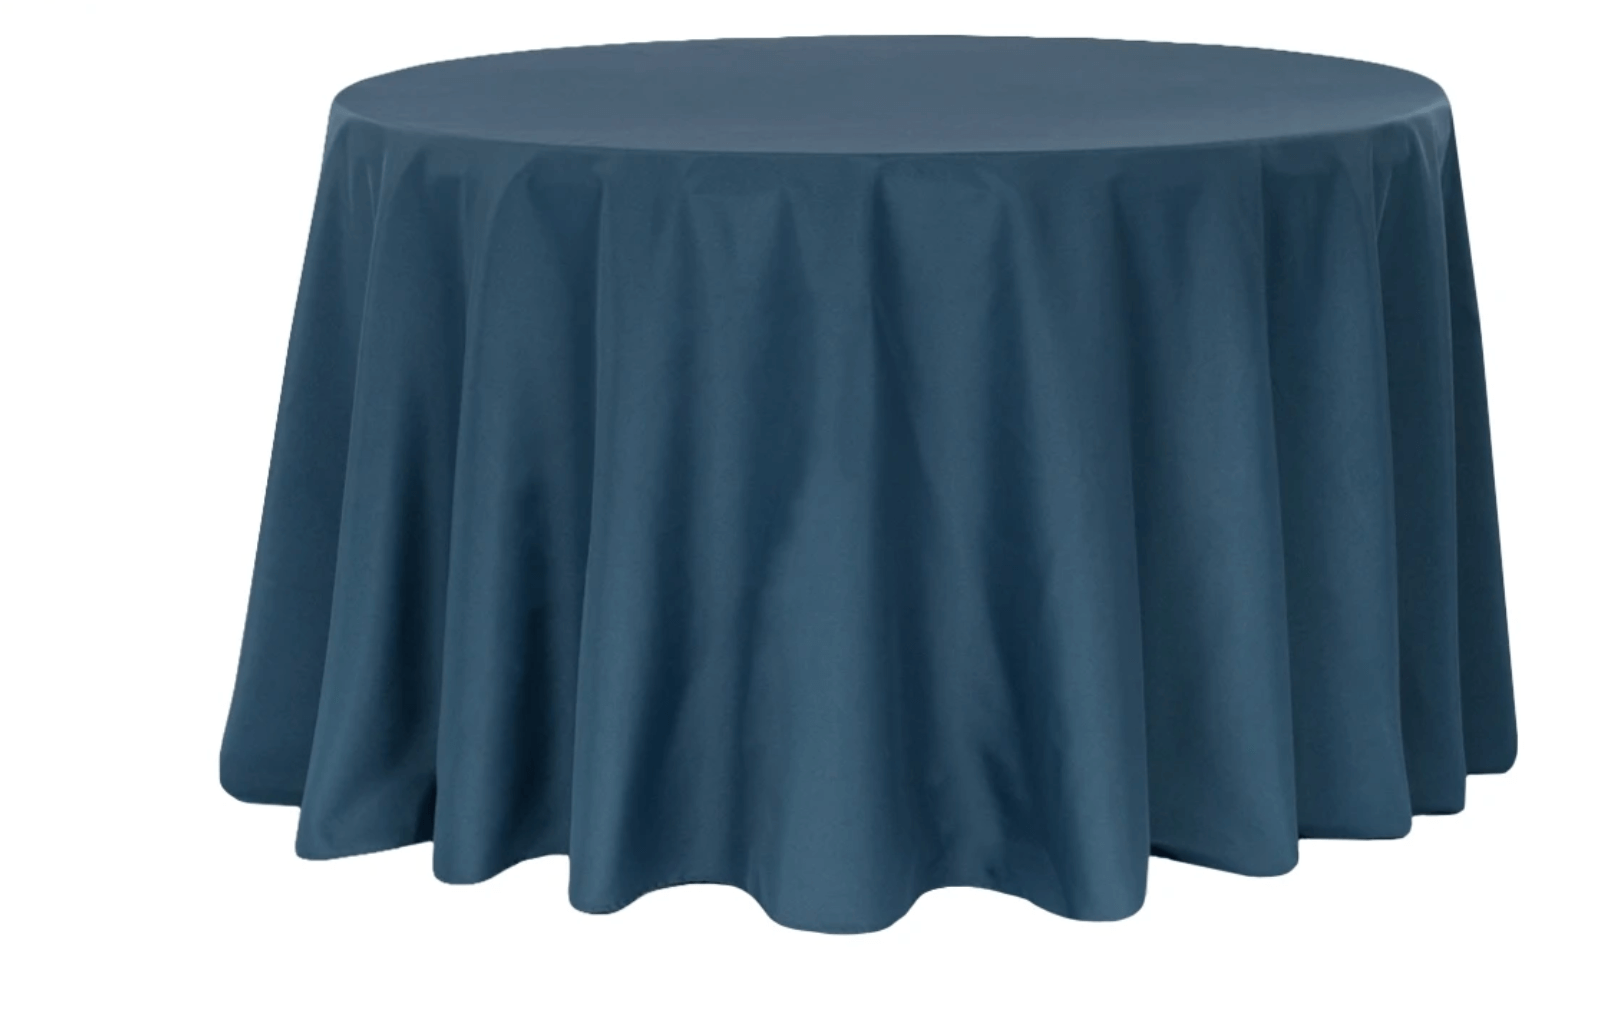 Round Solid Color Linens